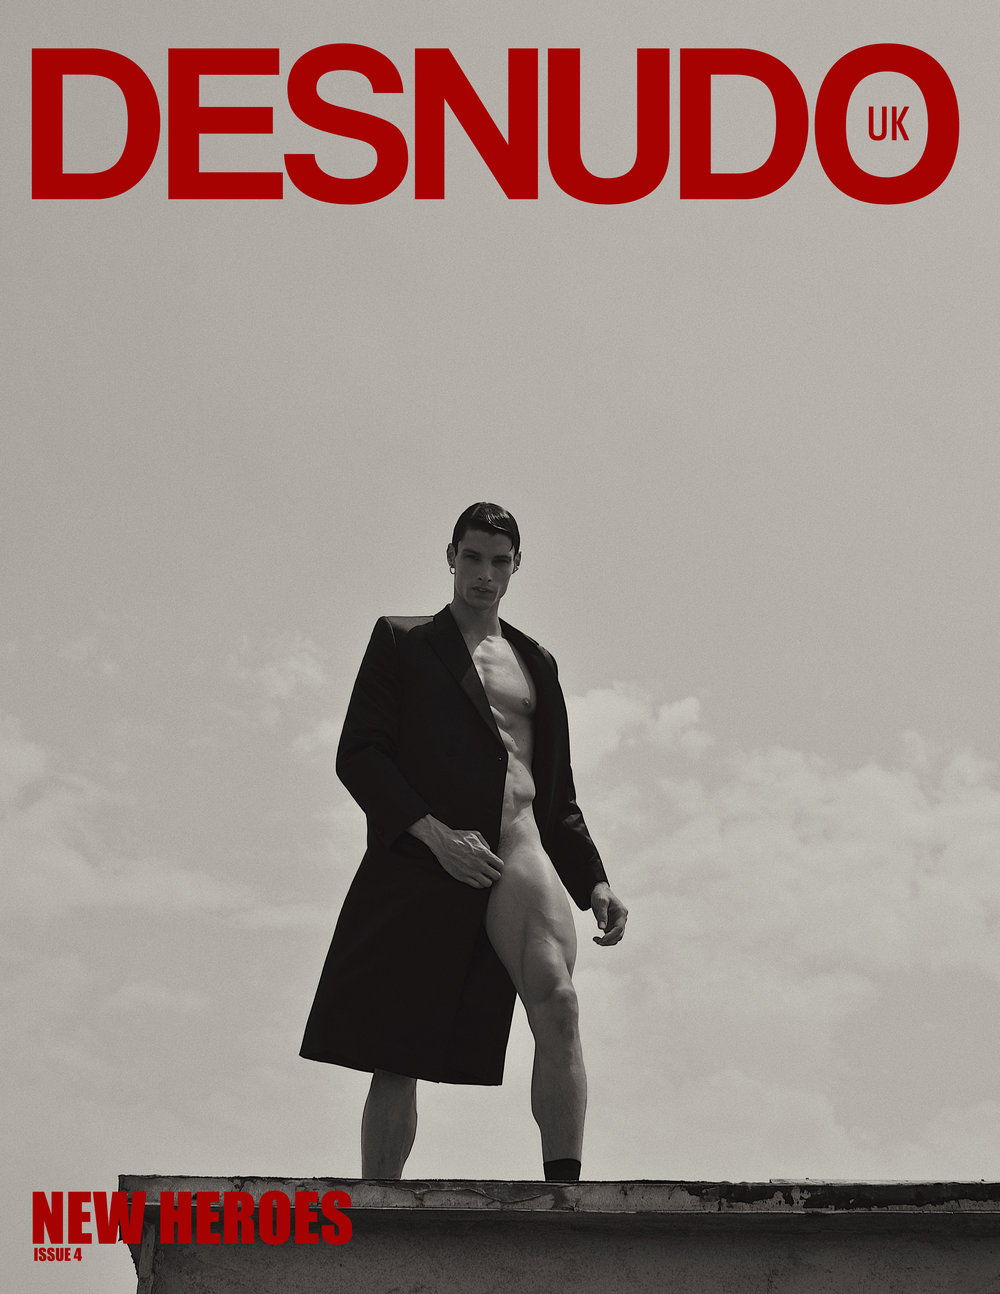 DESNUDO UK Sept 2018 issue